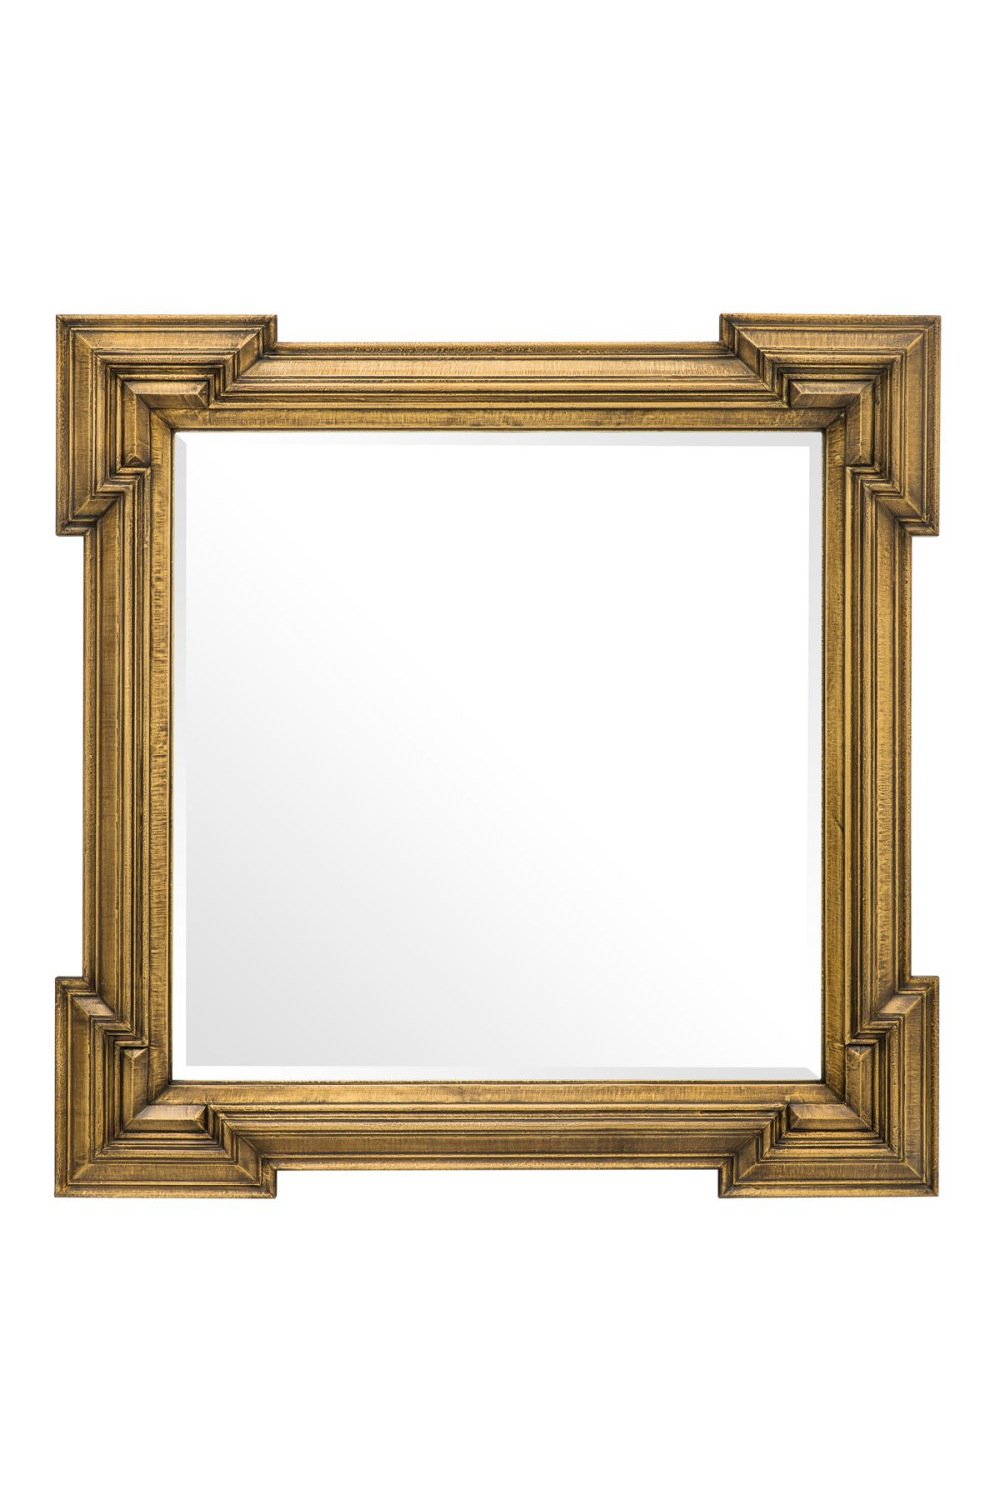 Antique Brass Frame Mirror | Eichholtz Livorno